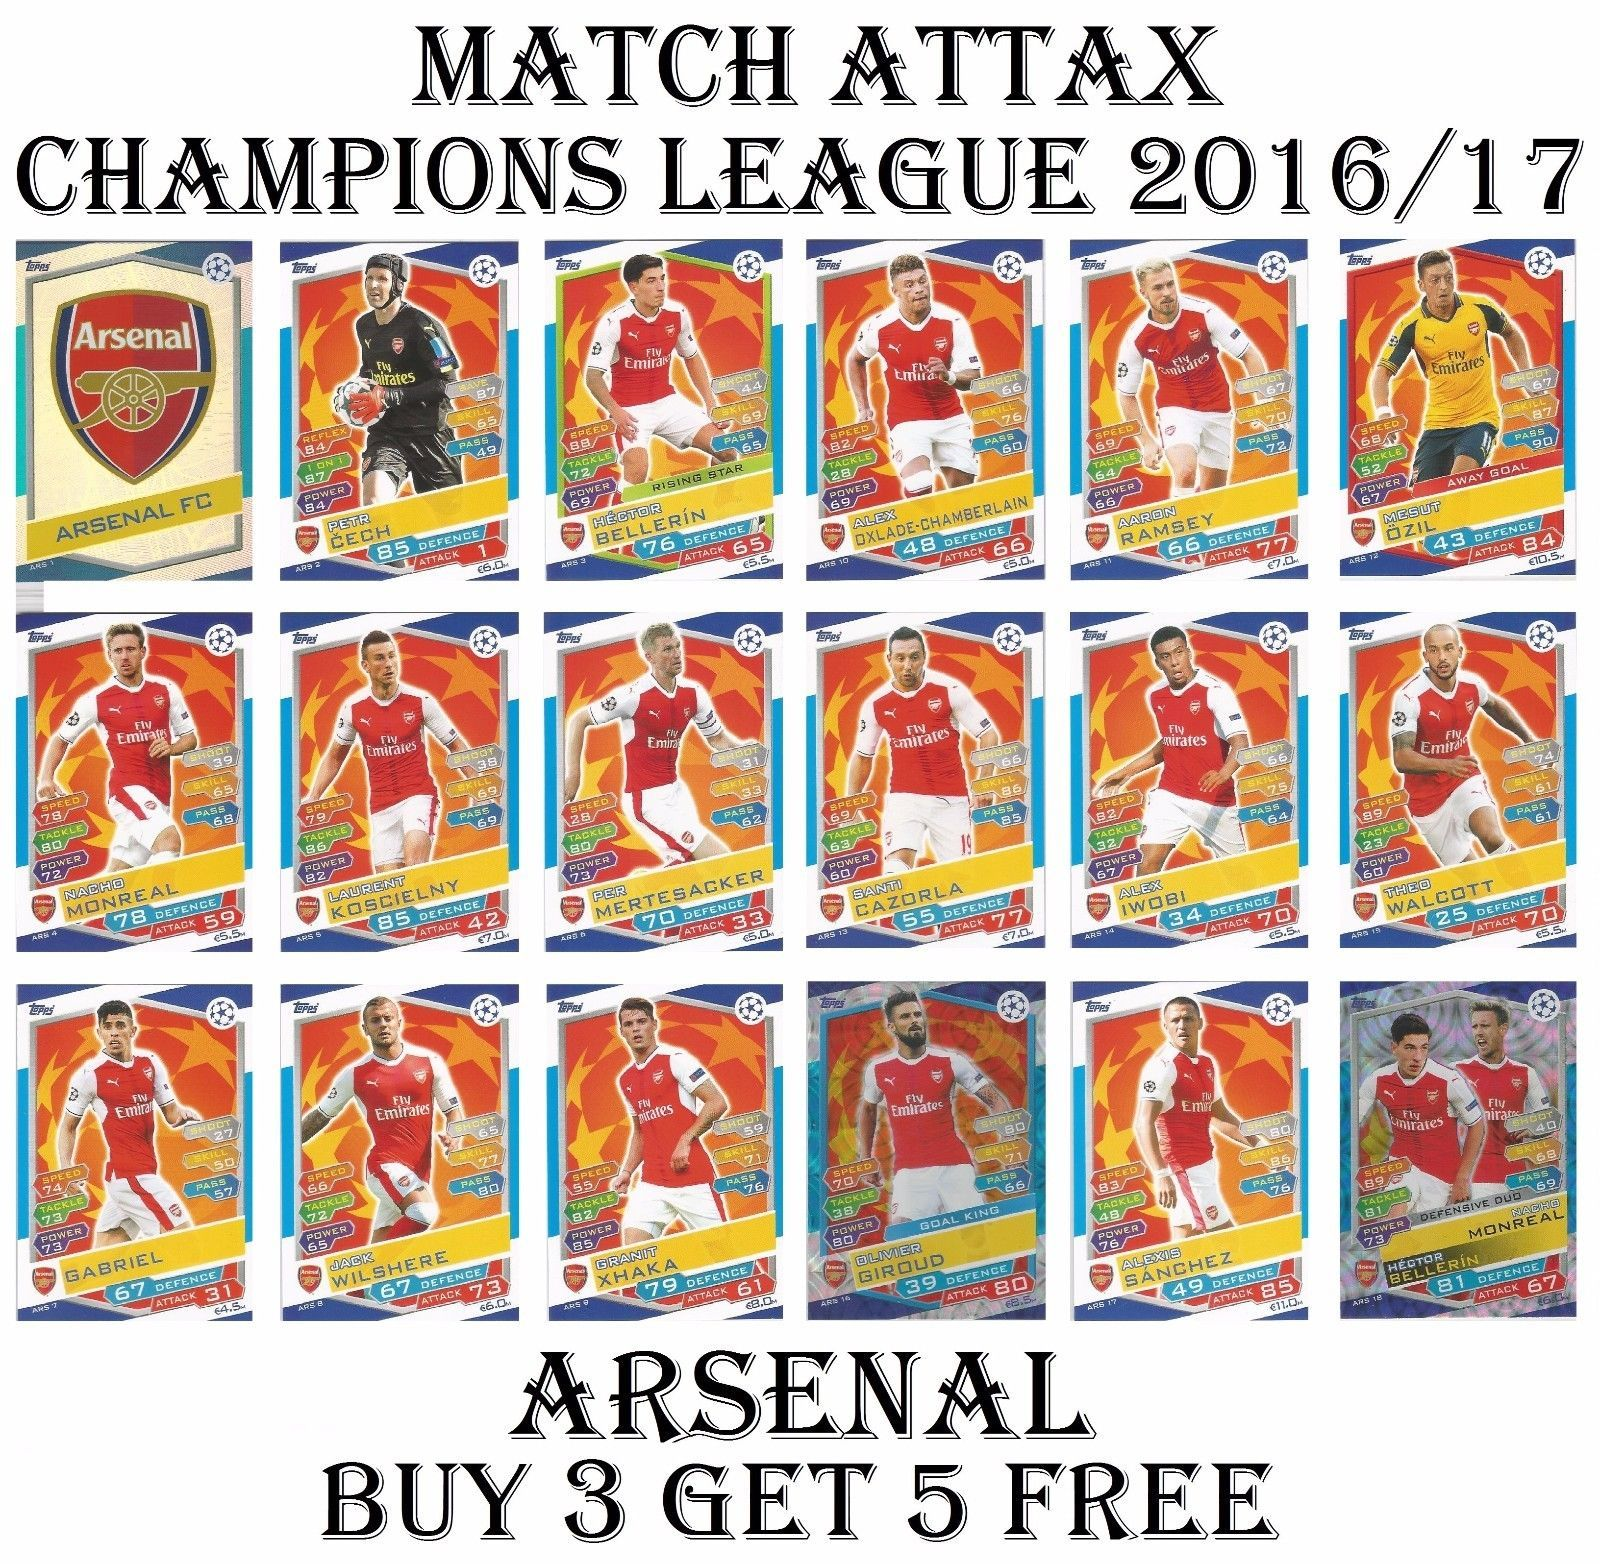 Arsenal Match Attax Champions League 2017 Card 2016 17 View More On The Link Http Www Zeppy Io Product Gb 2 3519553 Arsenal Match 2017 Card Match Attax